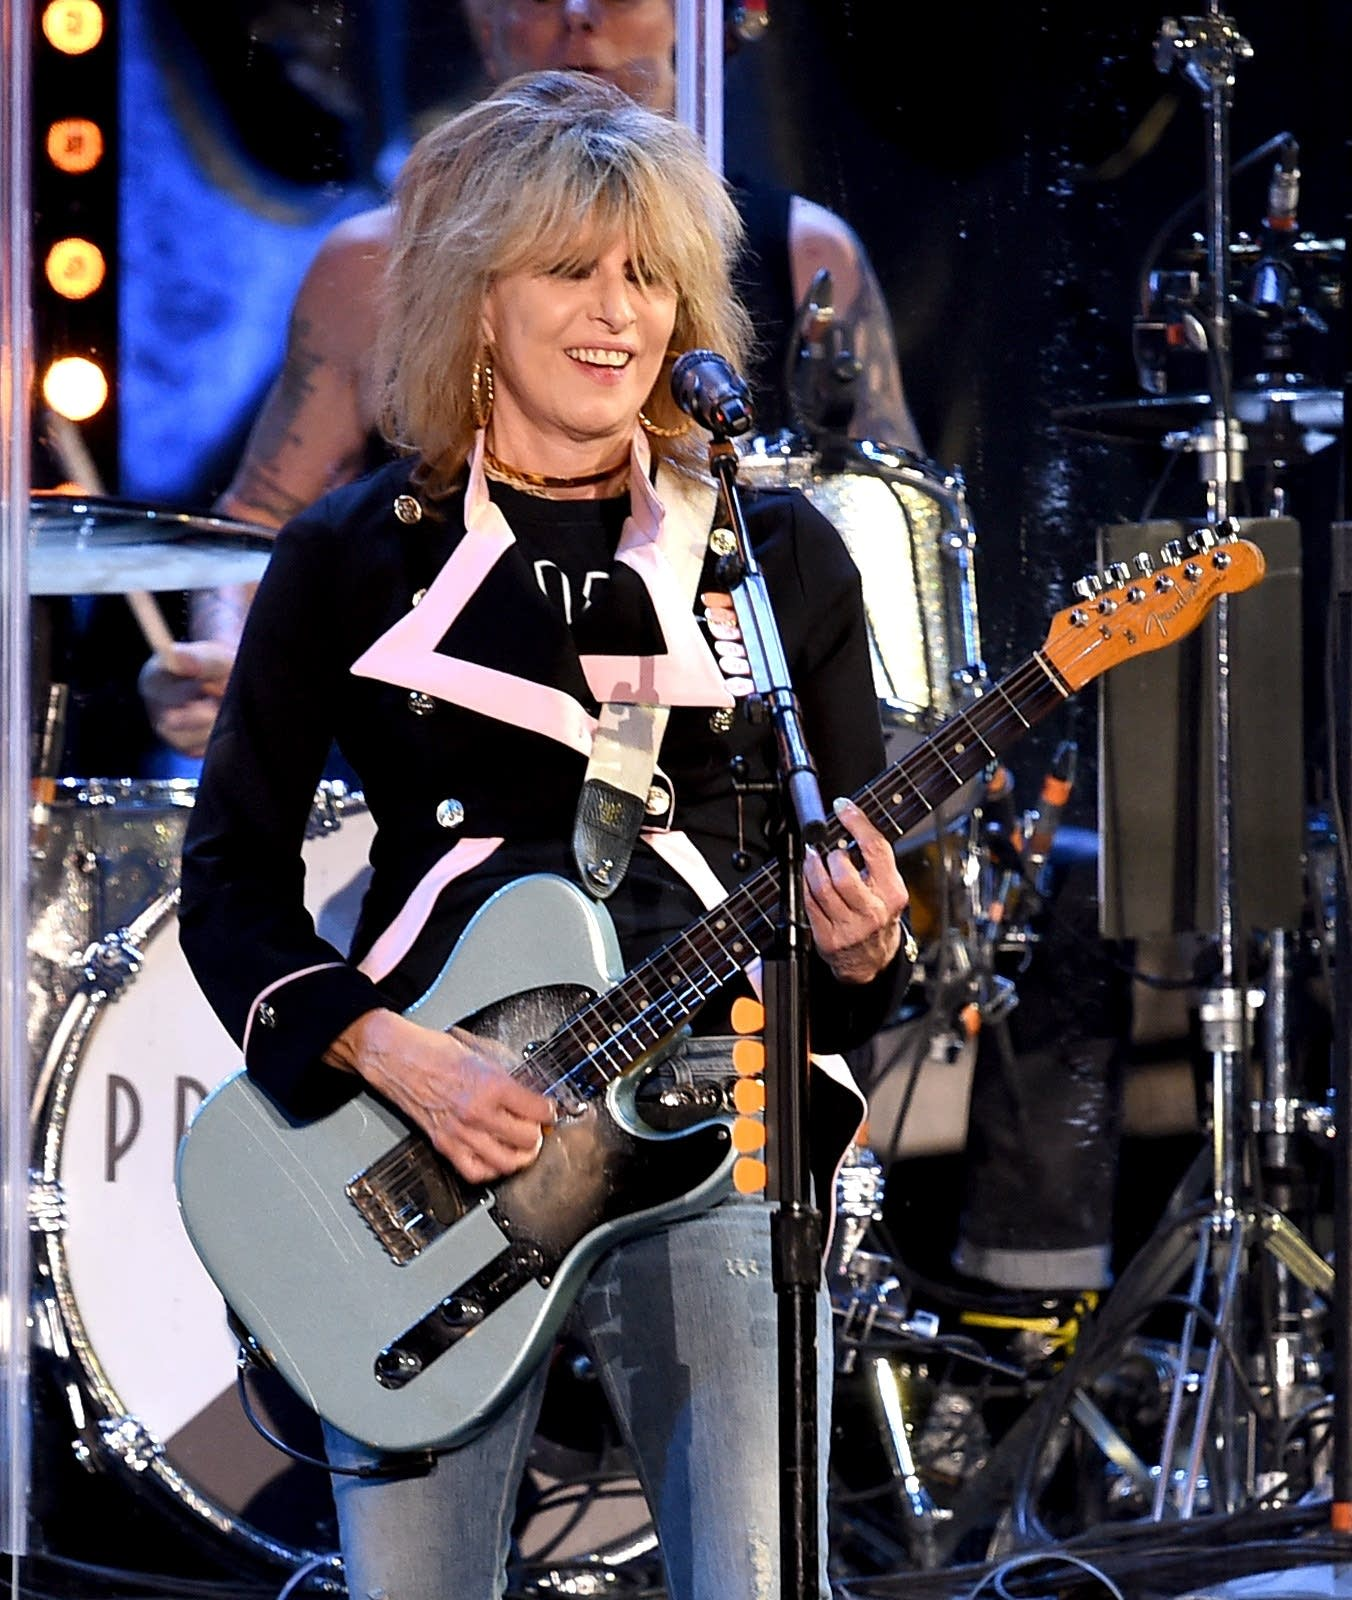 Suzi Quatro documentary related images